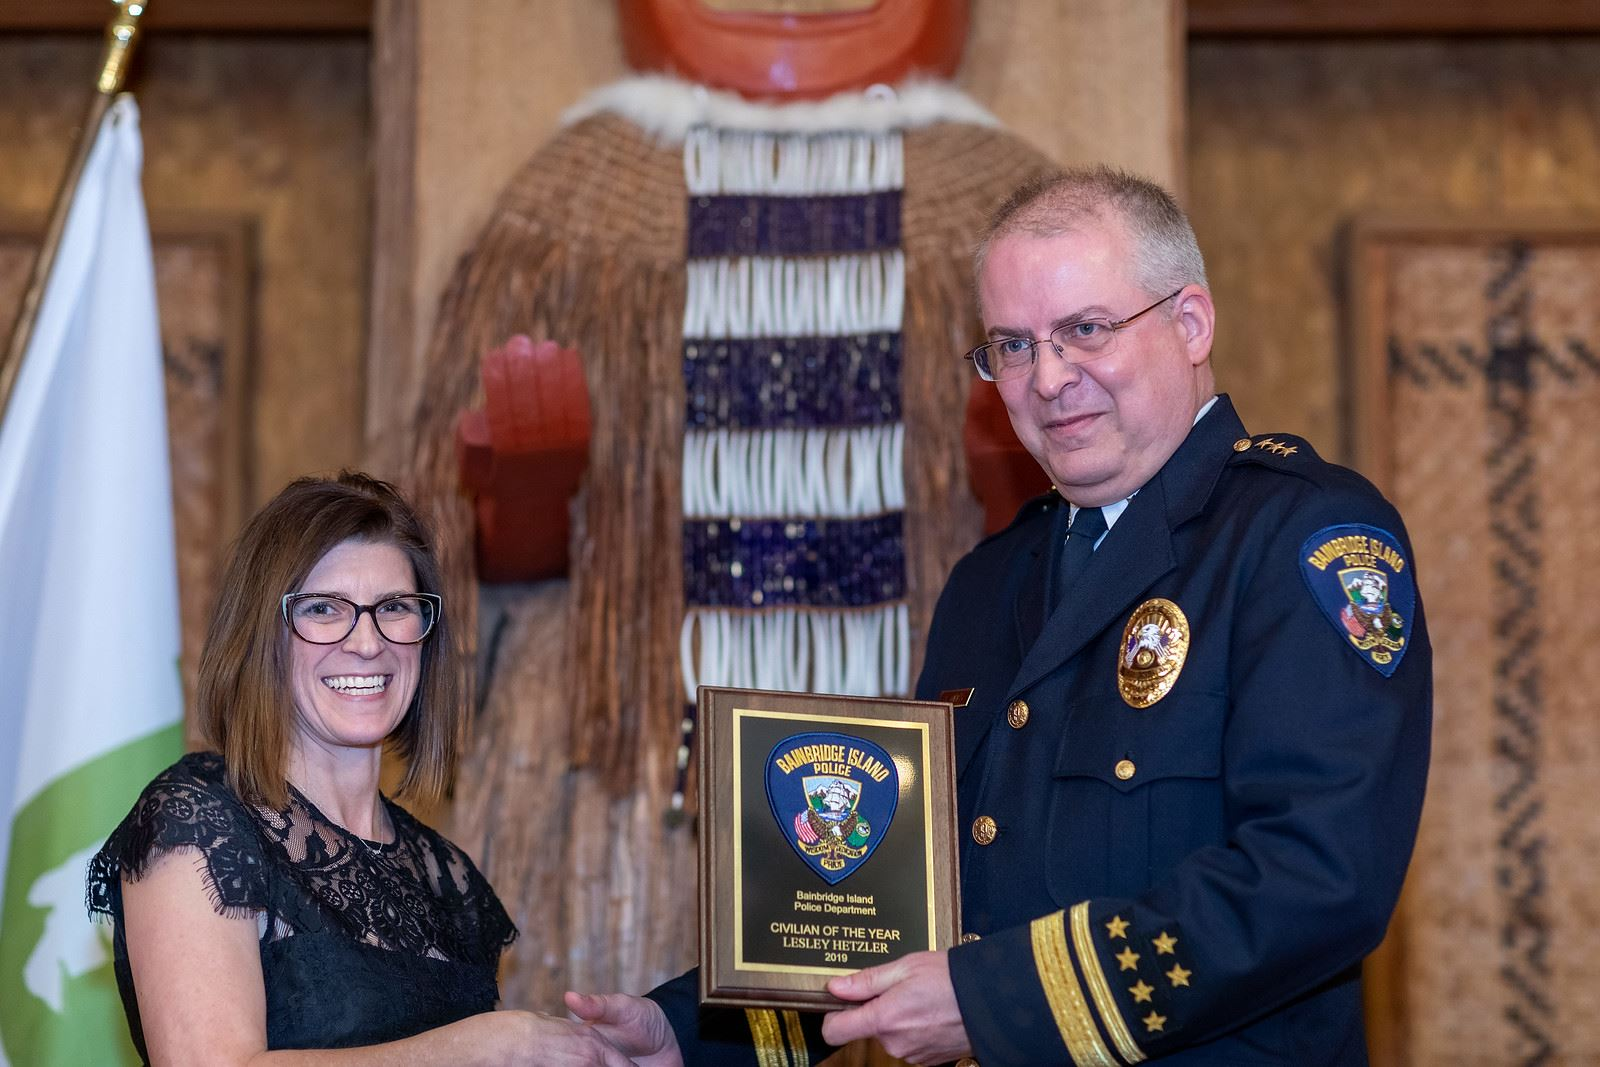 Senior Police Clerk Lesley Hetzler, Civilian of the Year 2019 (Photo Credit Debbie Gilman Photograph